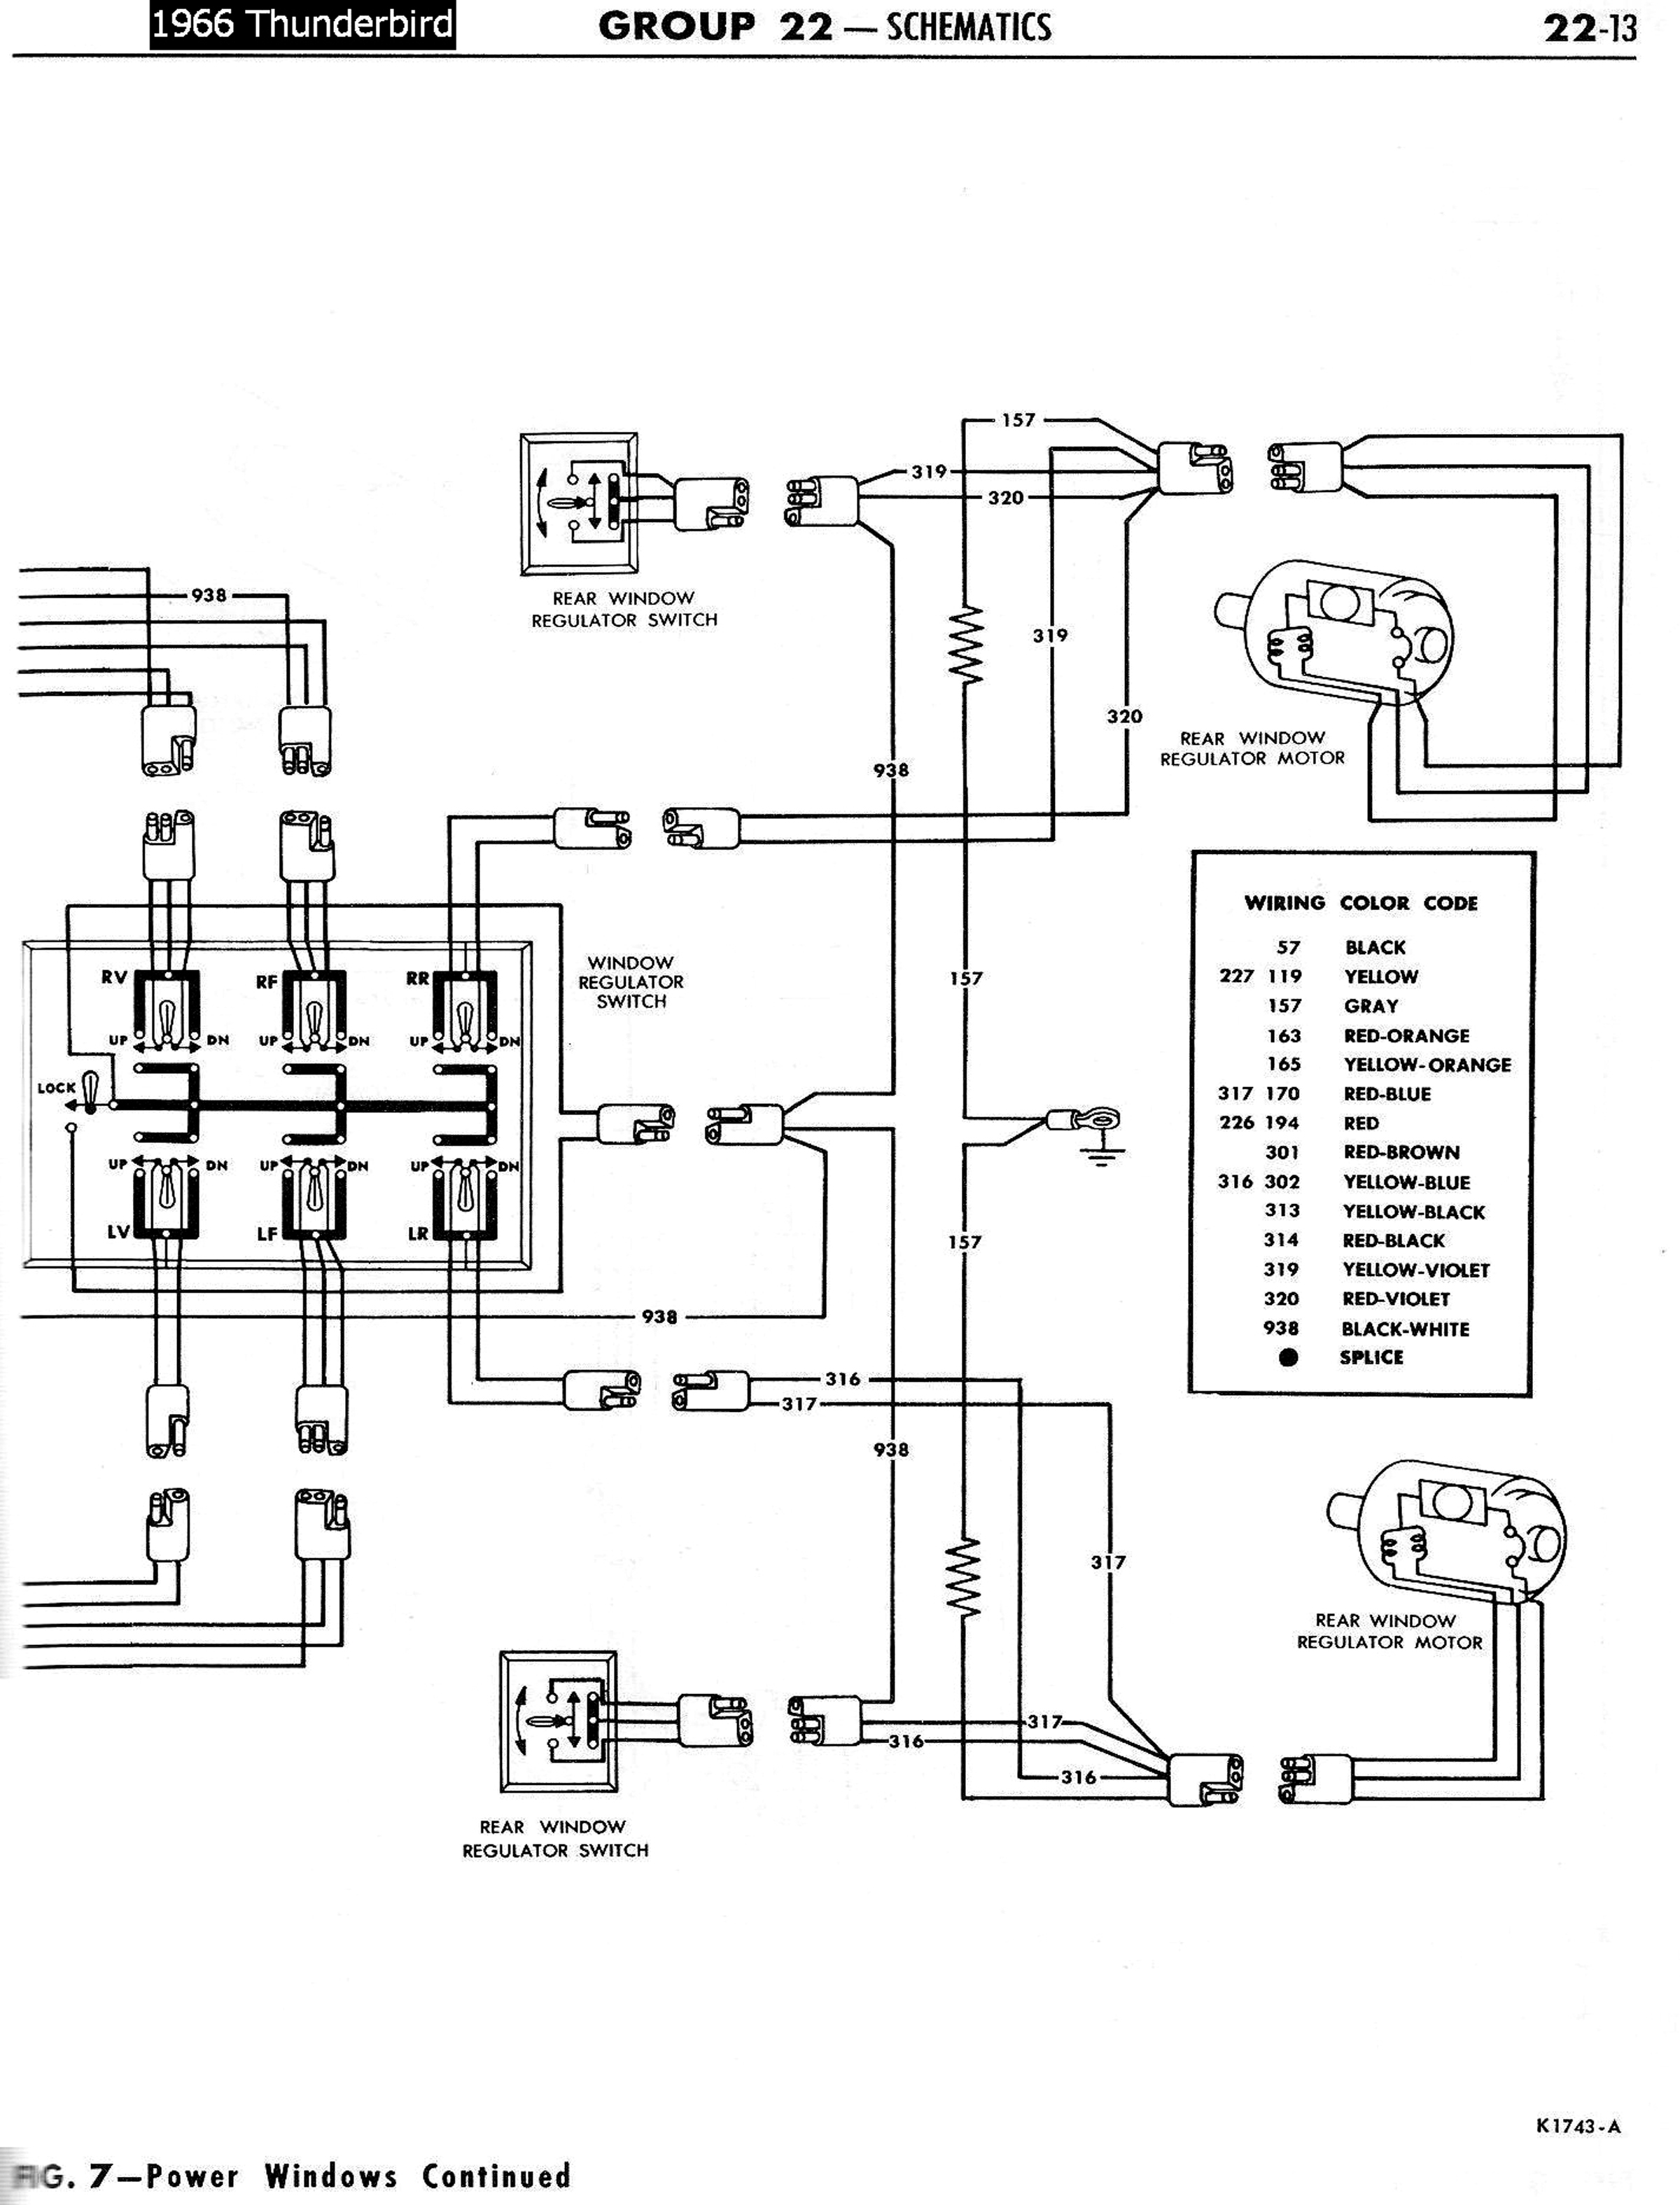 1986 Thunderbird Wiring Diagram | Wiring Diagram Database